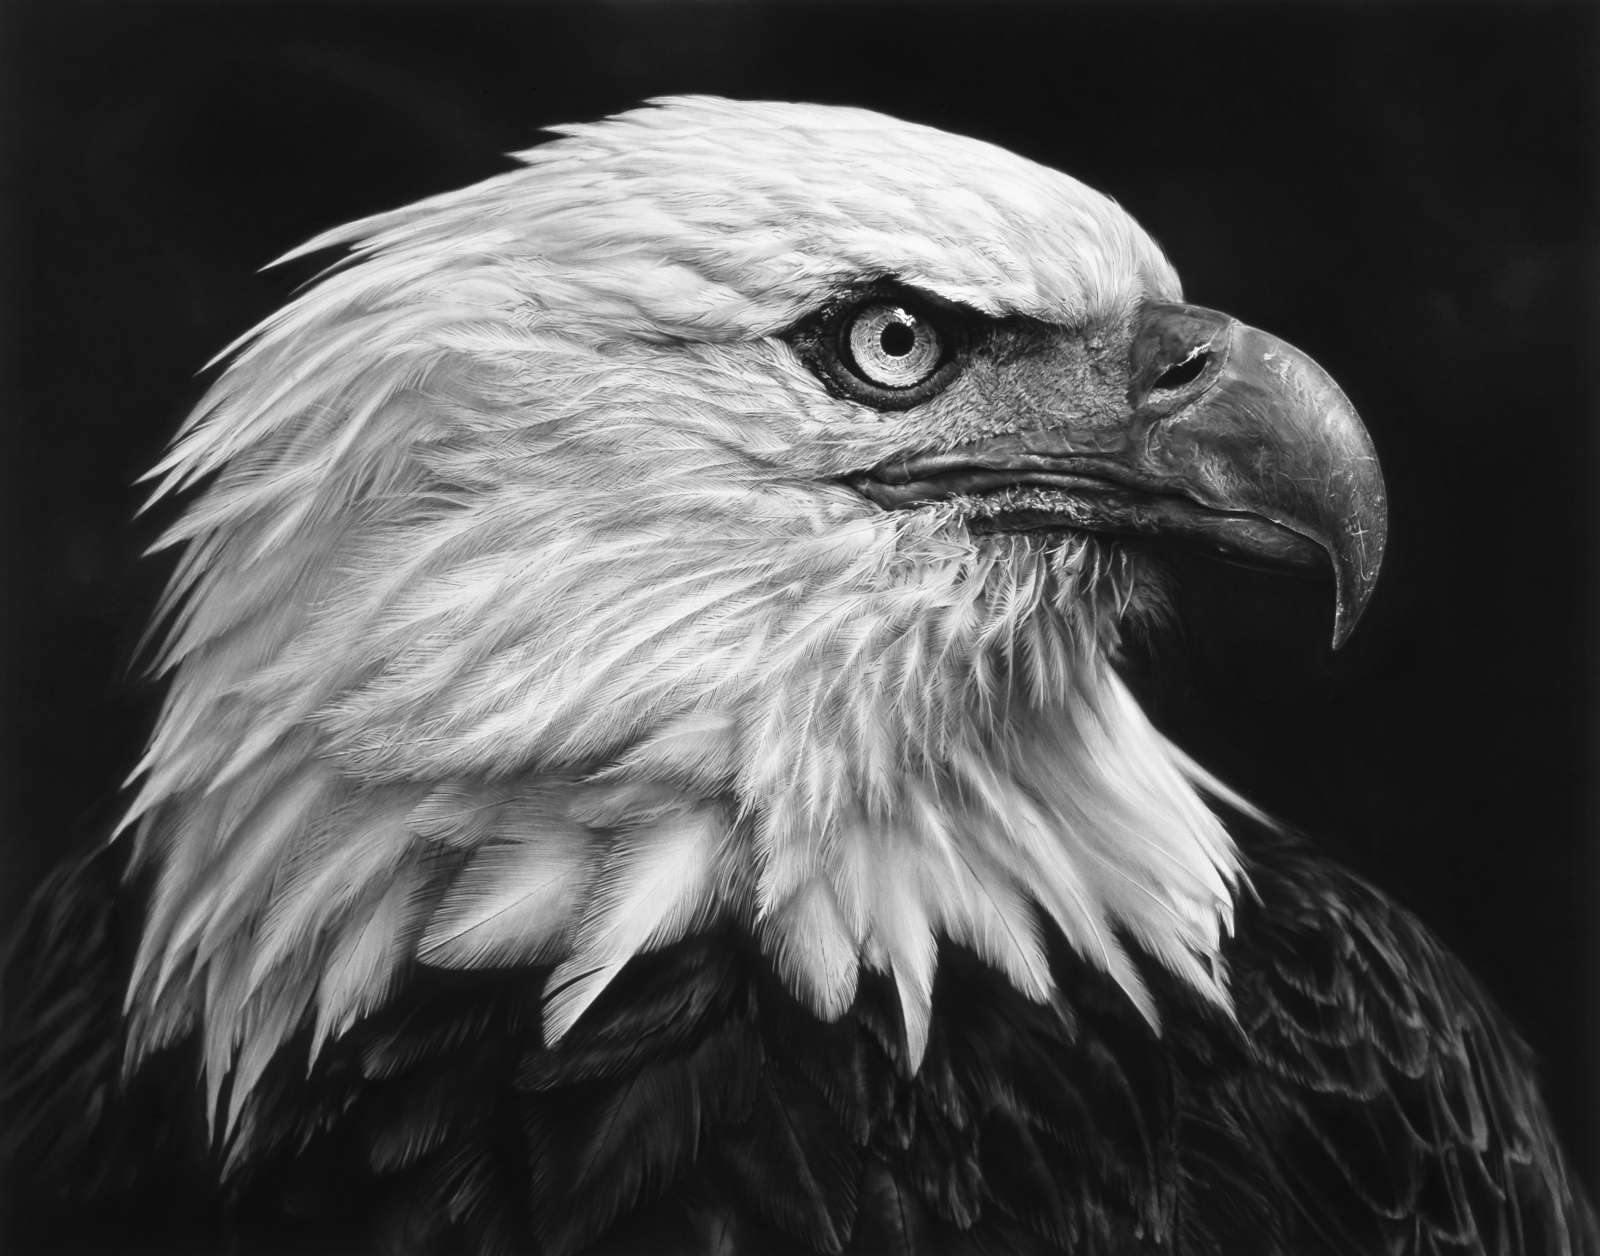 Robert Longo: Untitled (American Bald Eagle) 2017. Charcoal on mounted paper. Ståhl Collection, Norrköping, Sweden. © Robert Longo/VG Bild-Kunst Bonn, 2018.